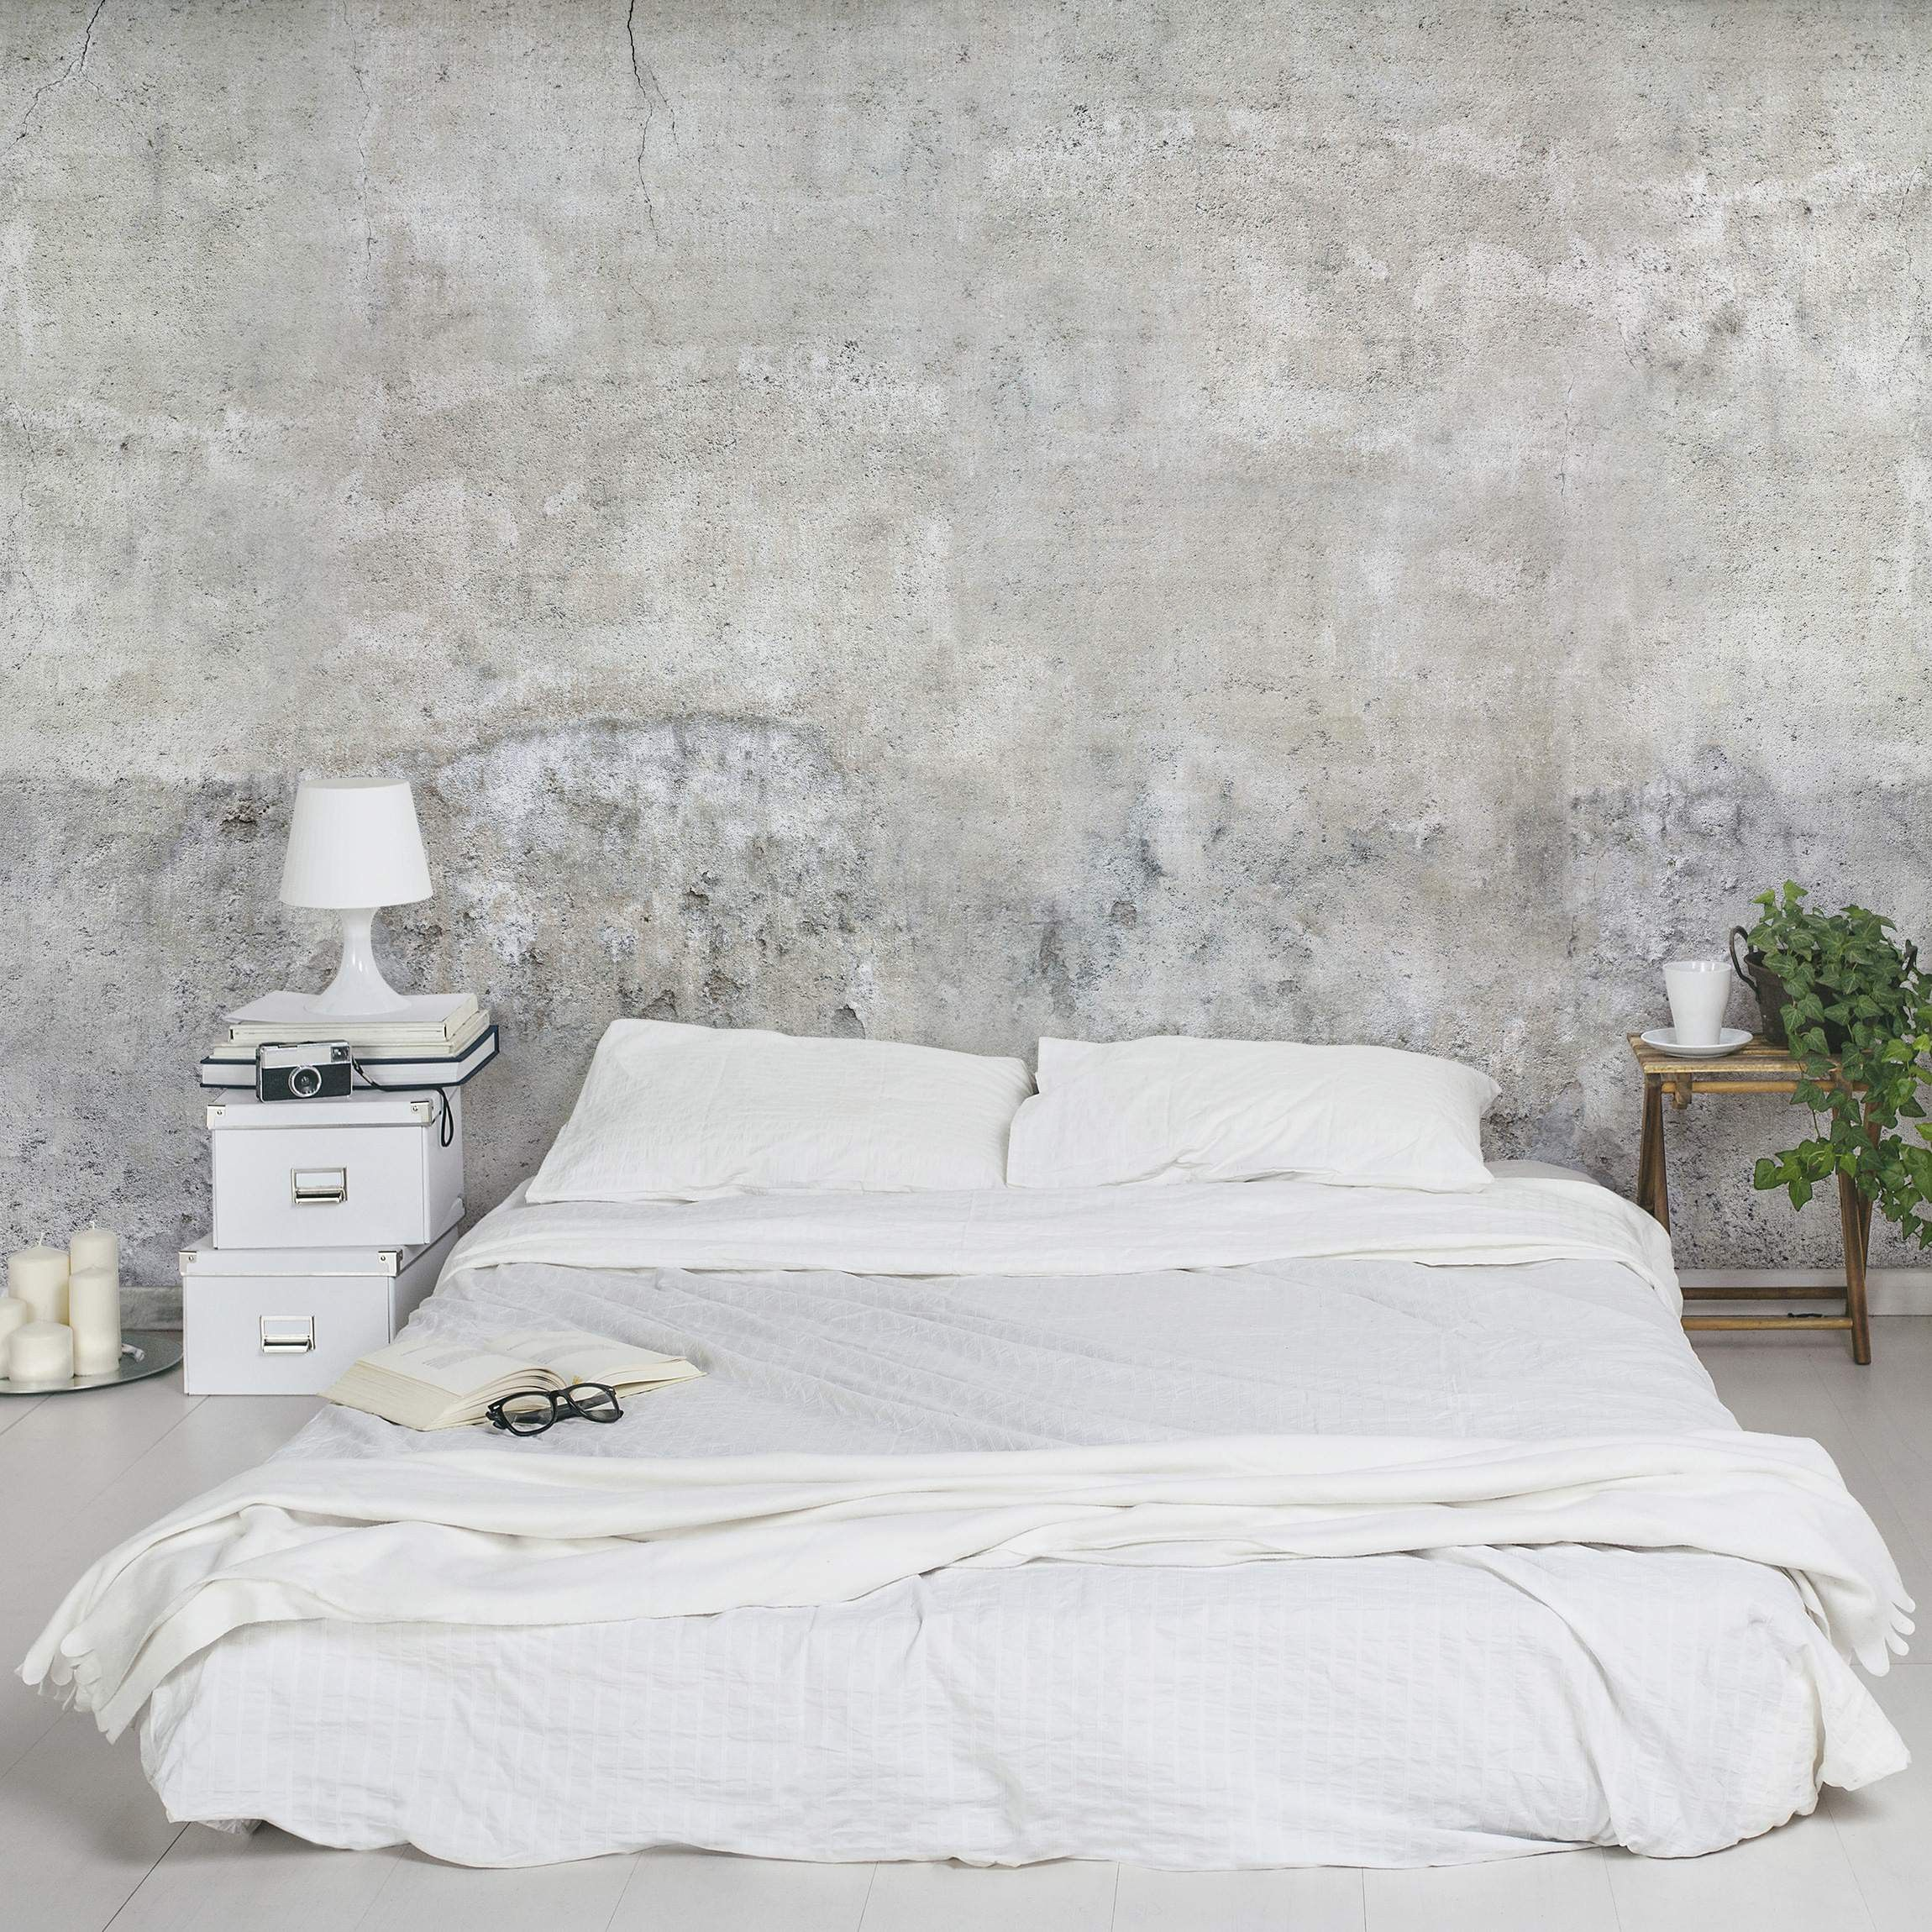 industrial style bedroom concrete wallpaper int. Black Bedroom Furniture Sets. Home Design Ideas